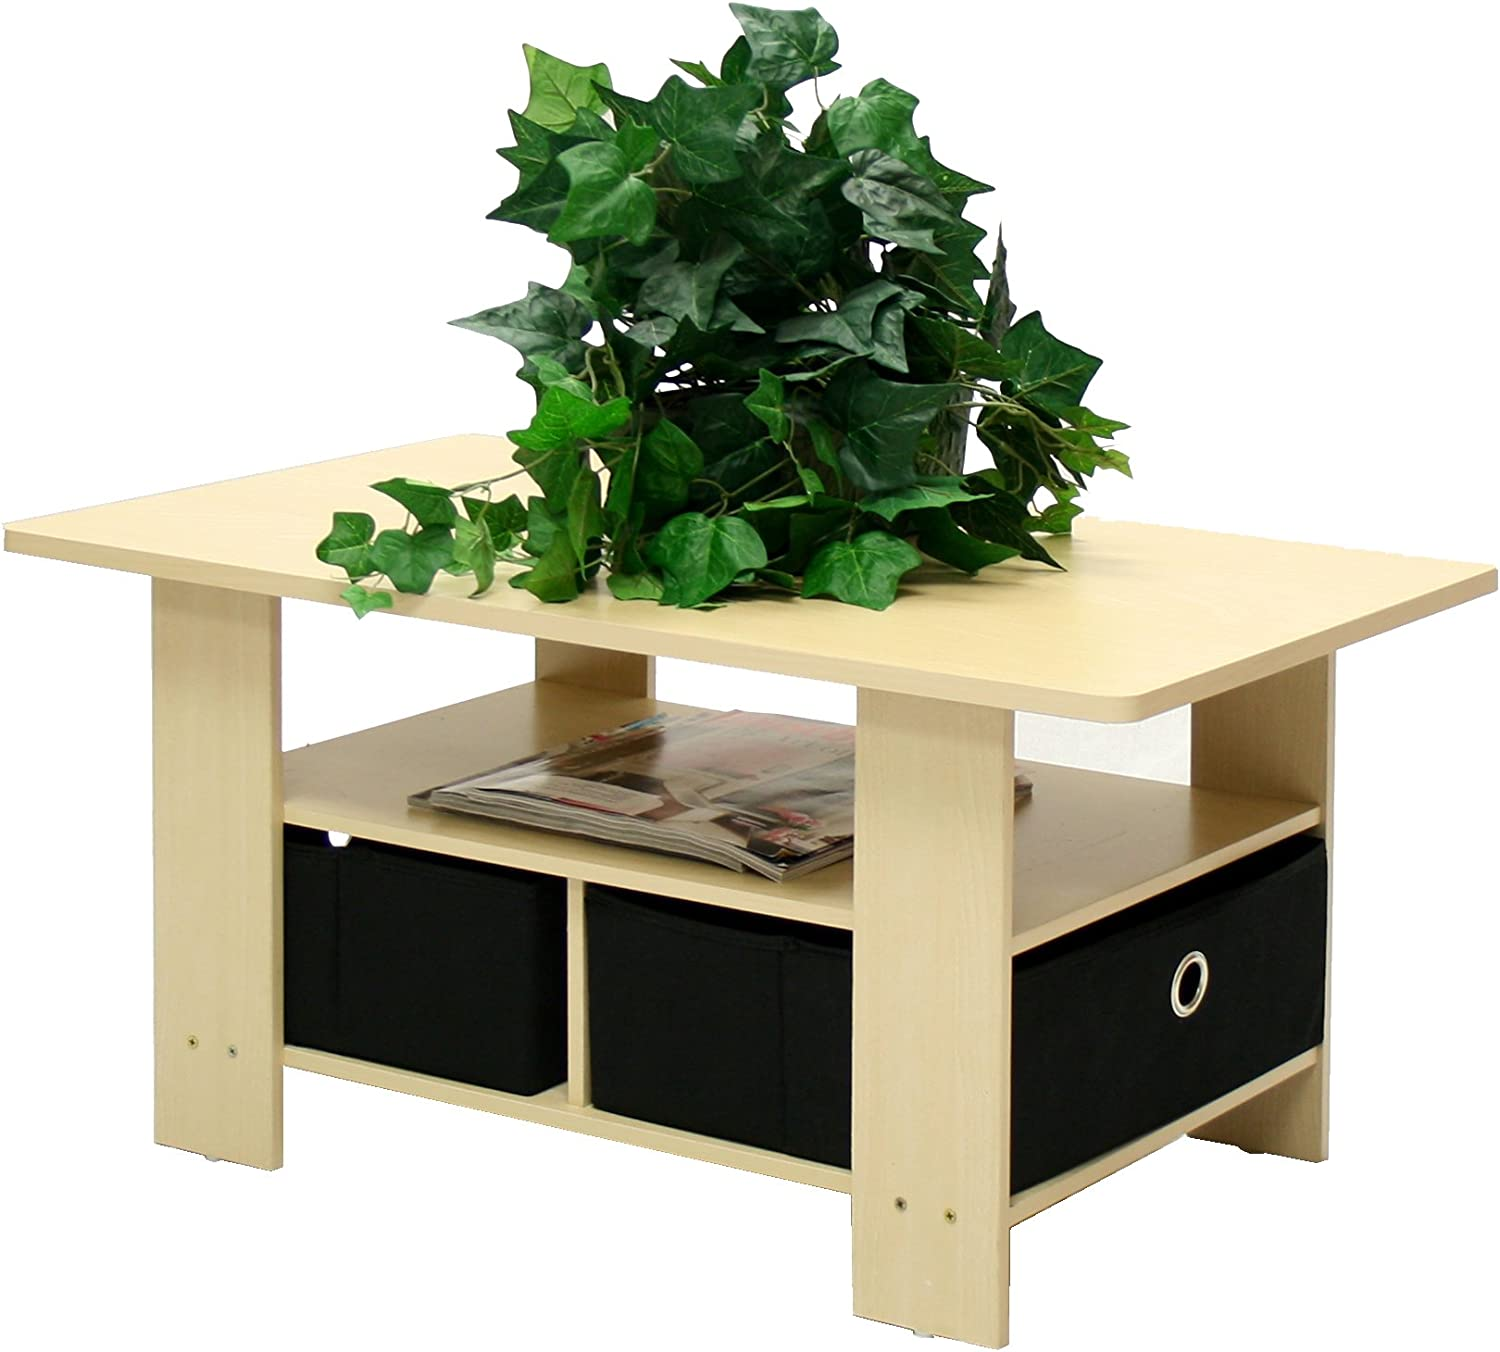 Furinno 11158SBE BK (99976) Coffee Table, Steam Beech